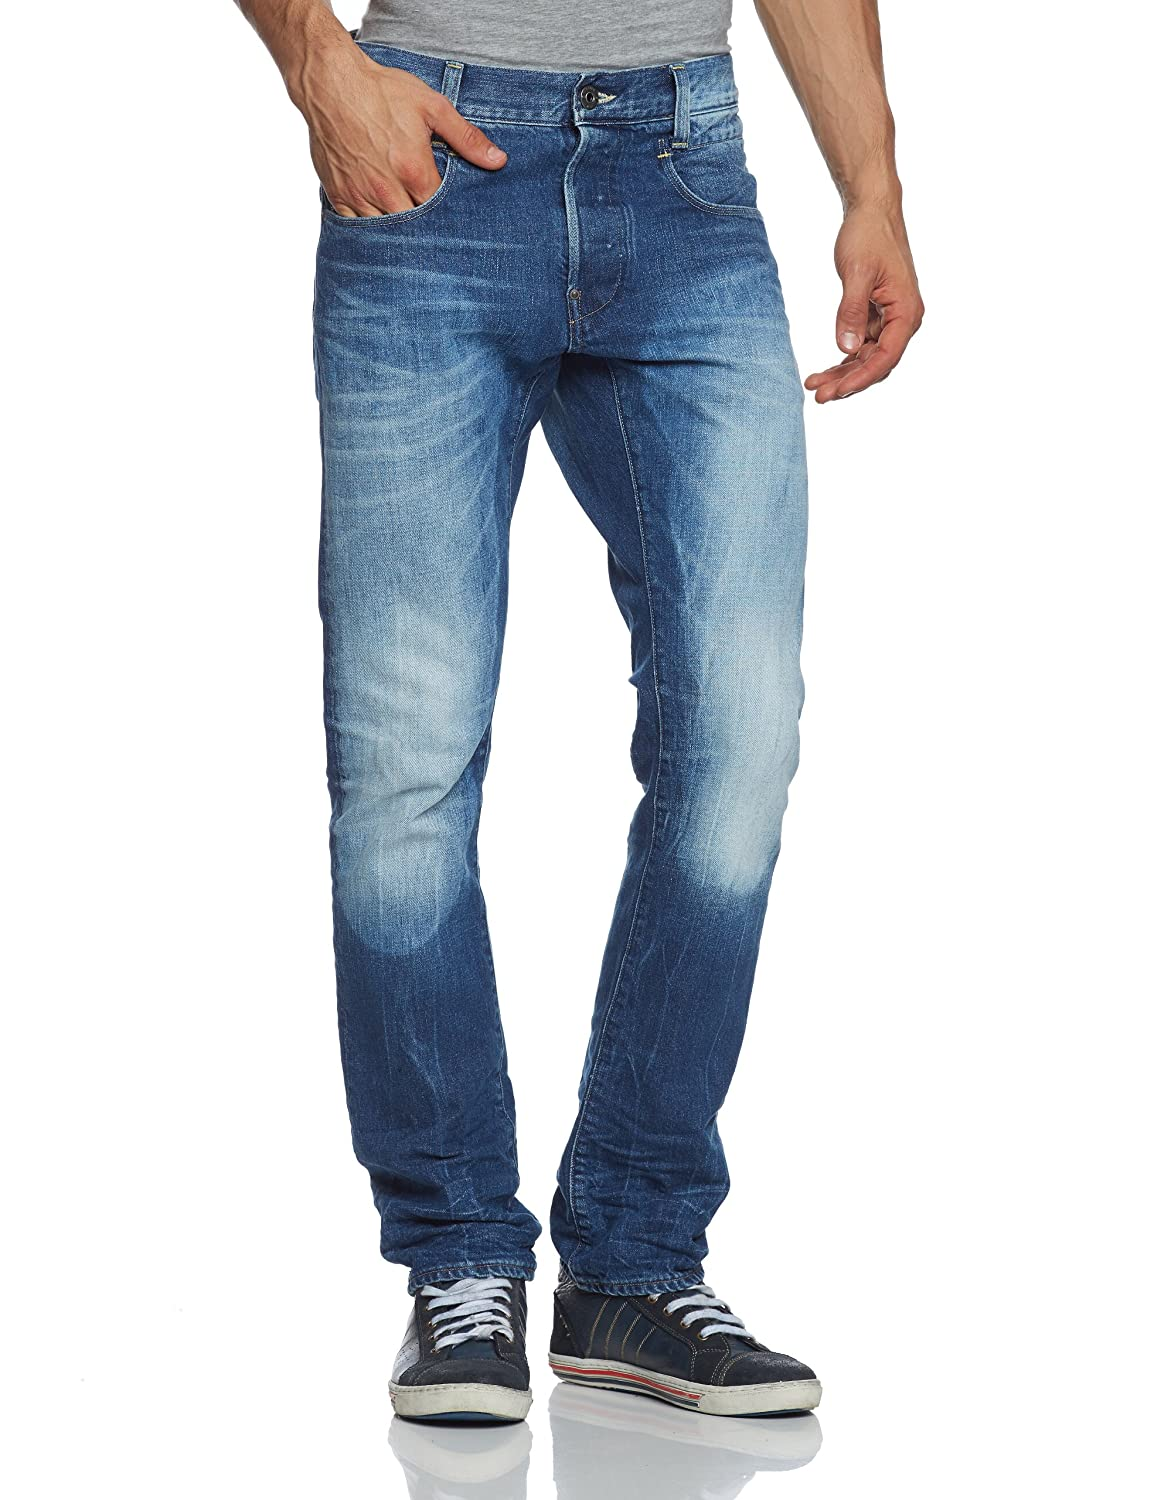 G-STAR Herren Jeans Normaler Bund New Radar Slim. - 50740.5203.071, Gr. 32/34, Blau (medium aged 071)